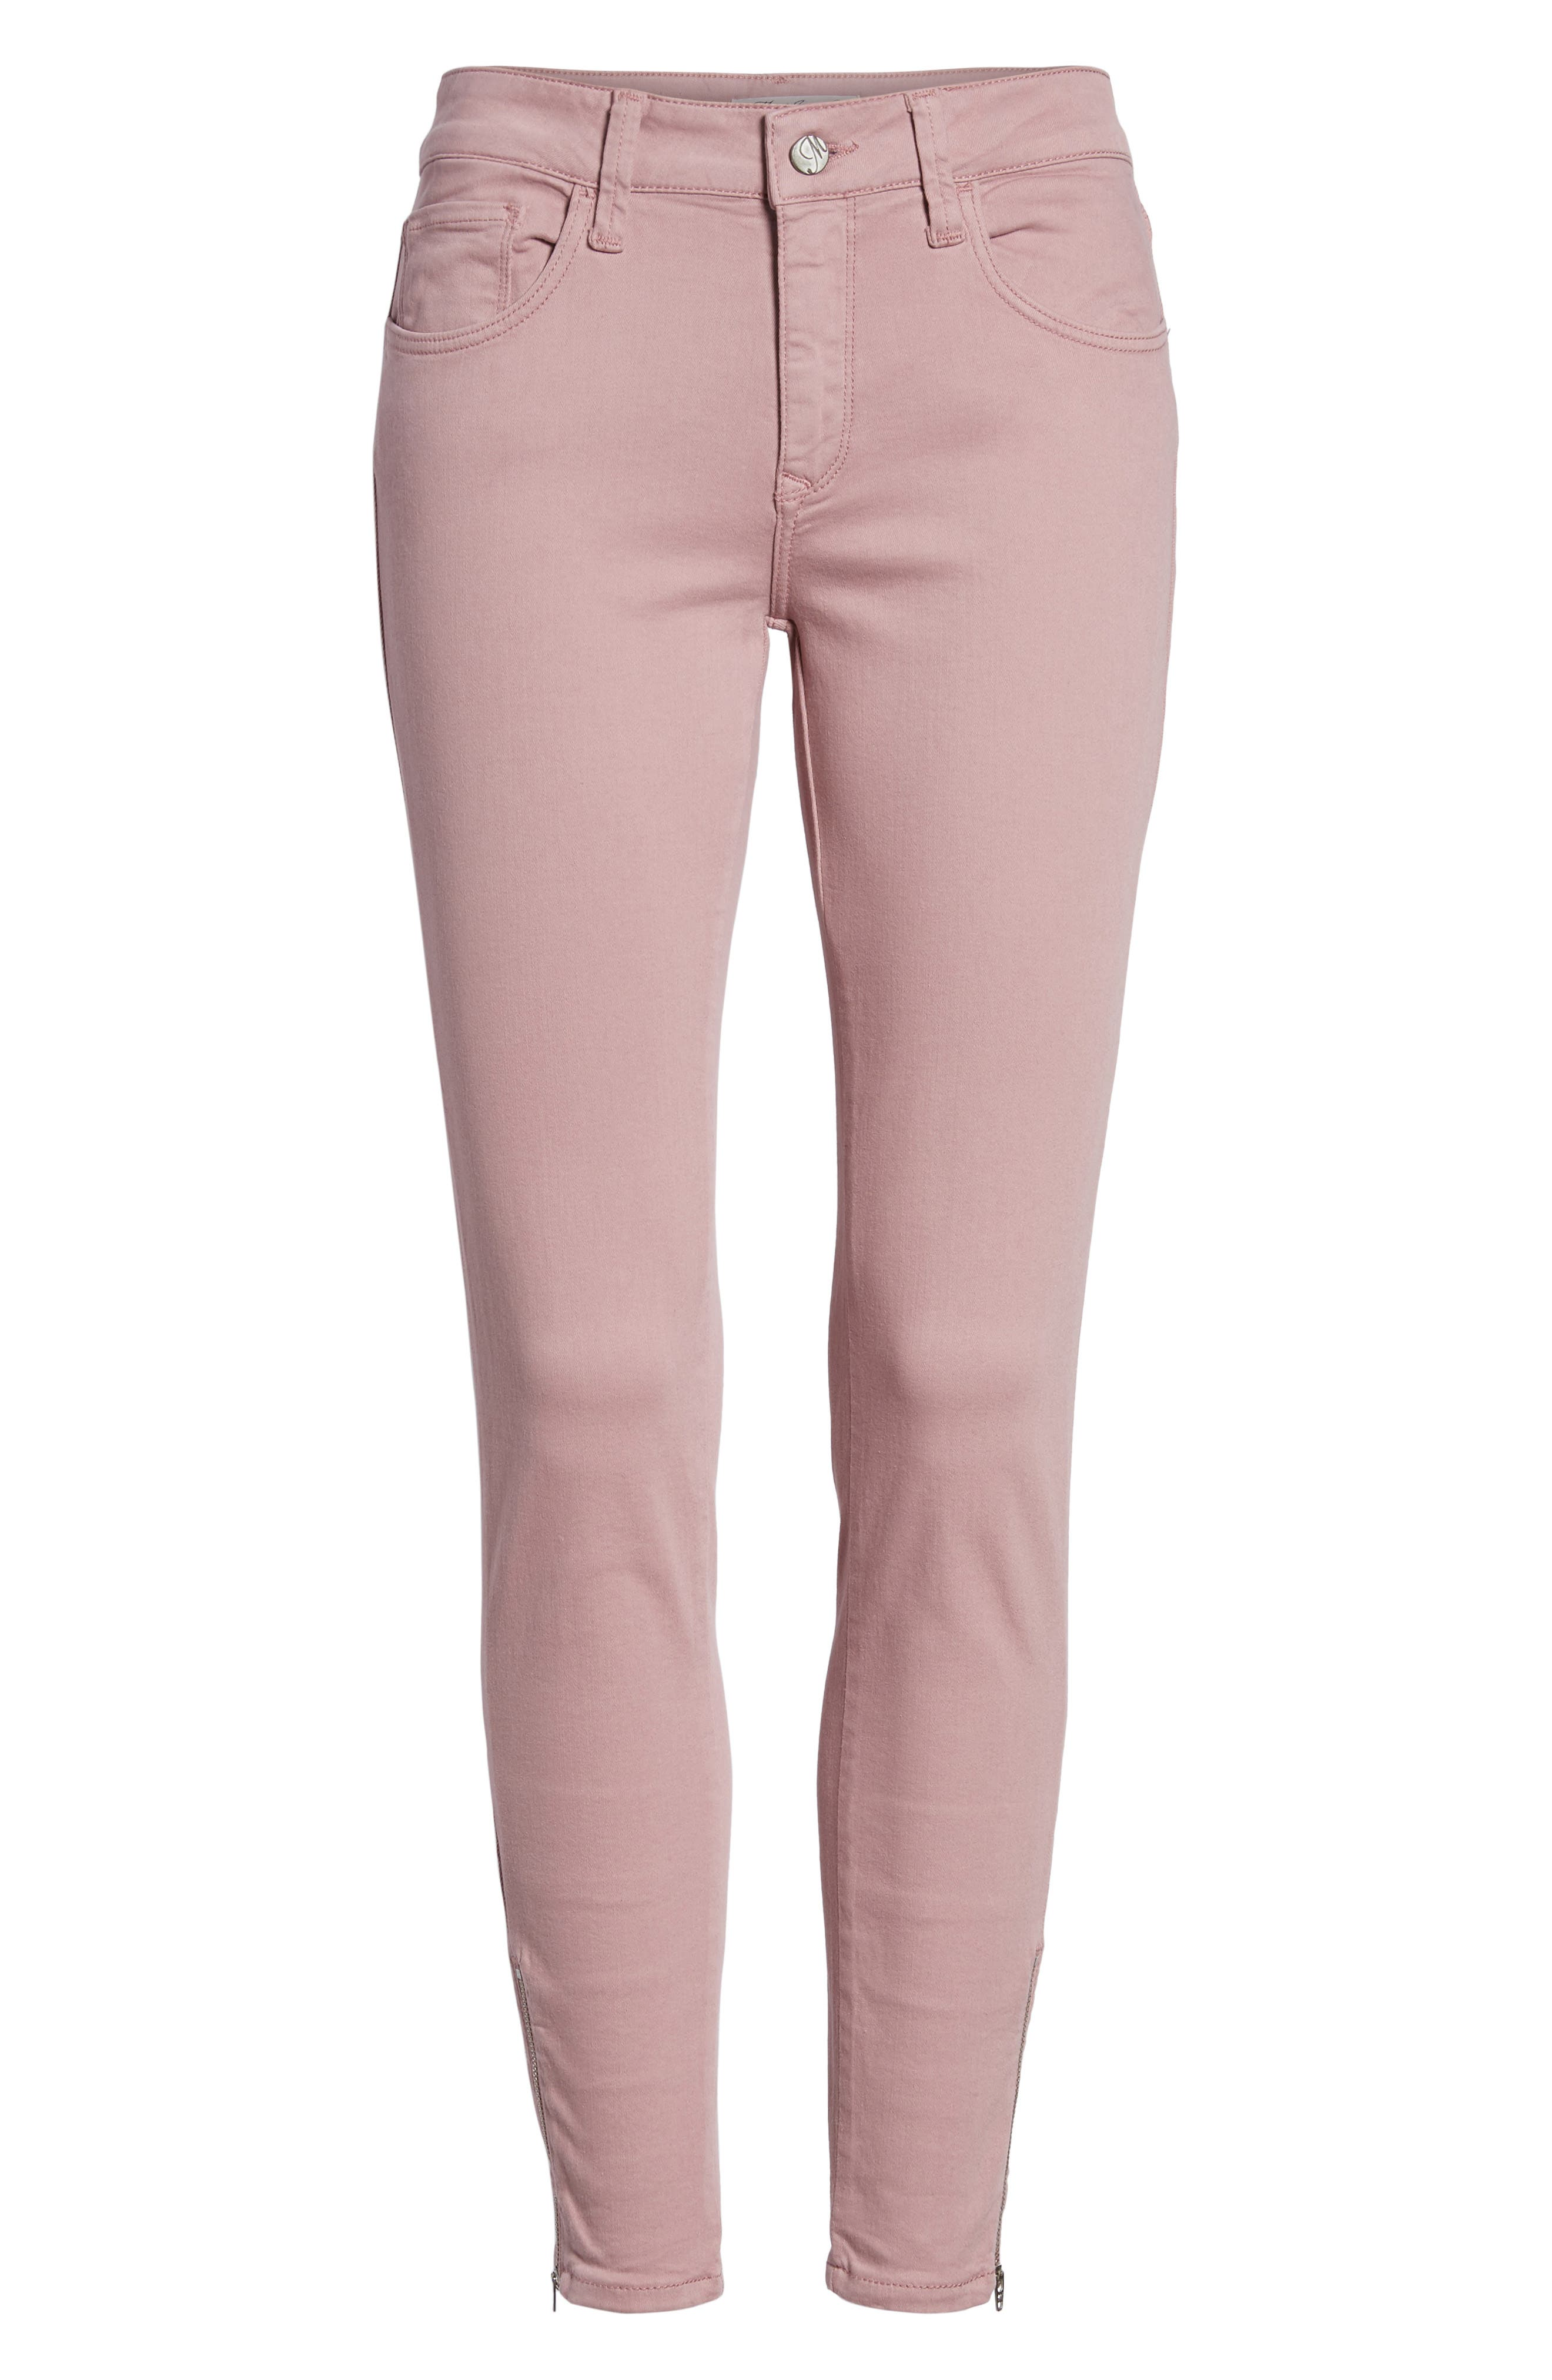 Adriana Zip Ankle Super Skinny Jeans,                             Alternate thumbnail 6, color,                             650